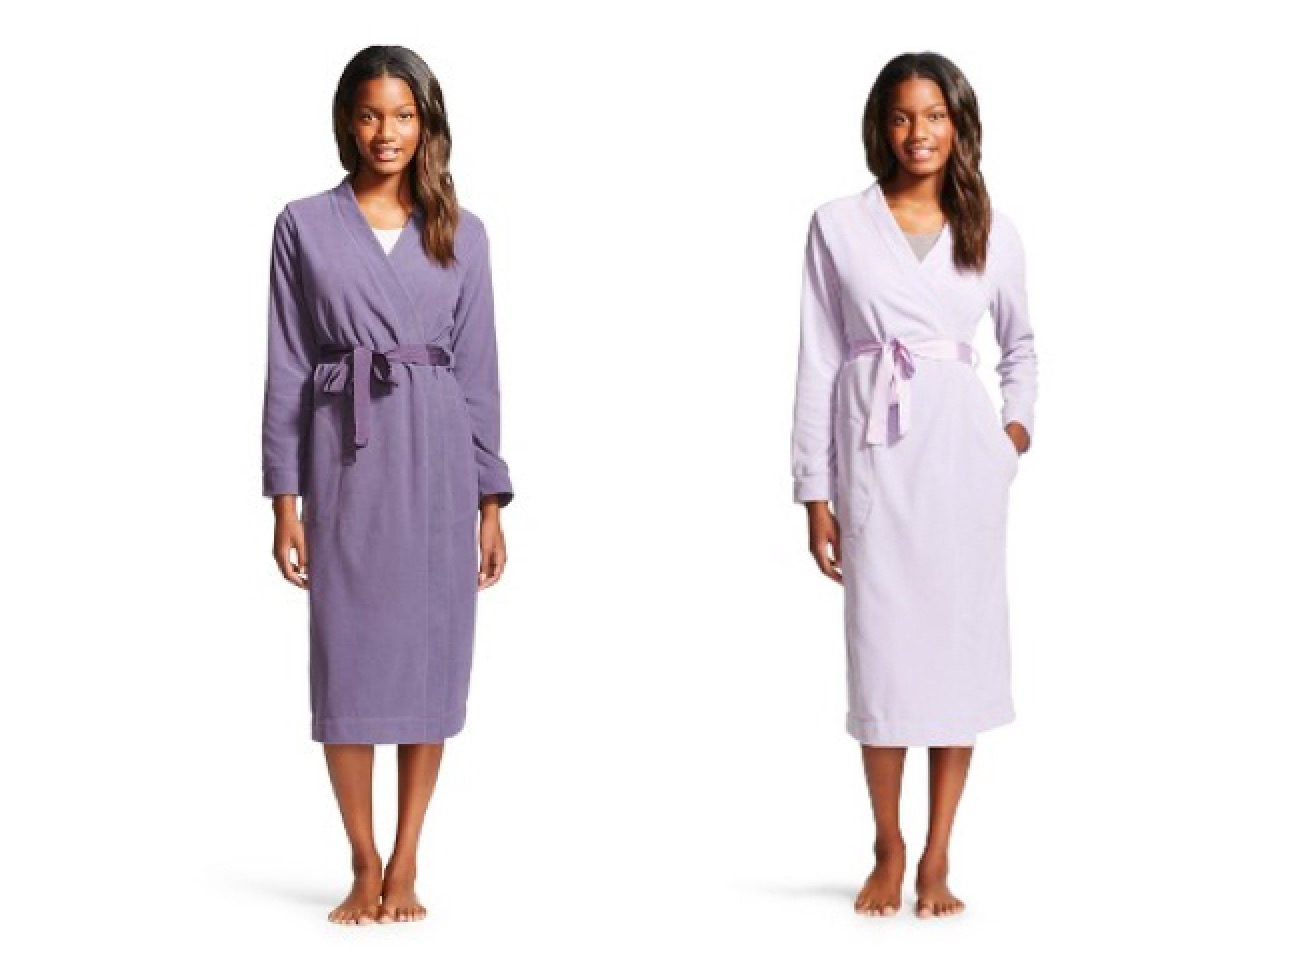 Gillian O'Malley Microfleece Robe